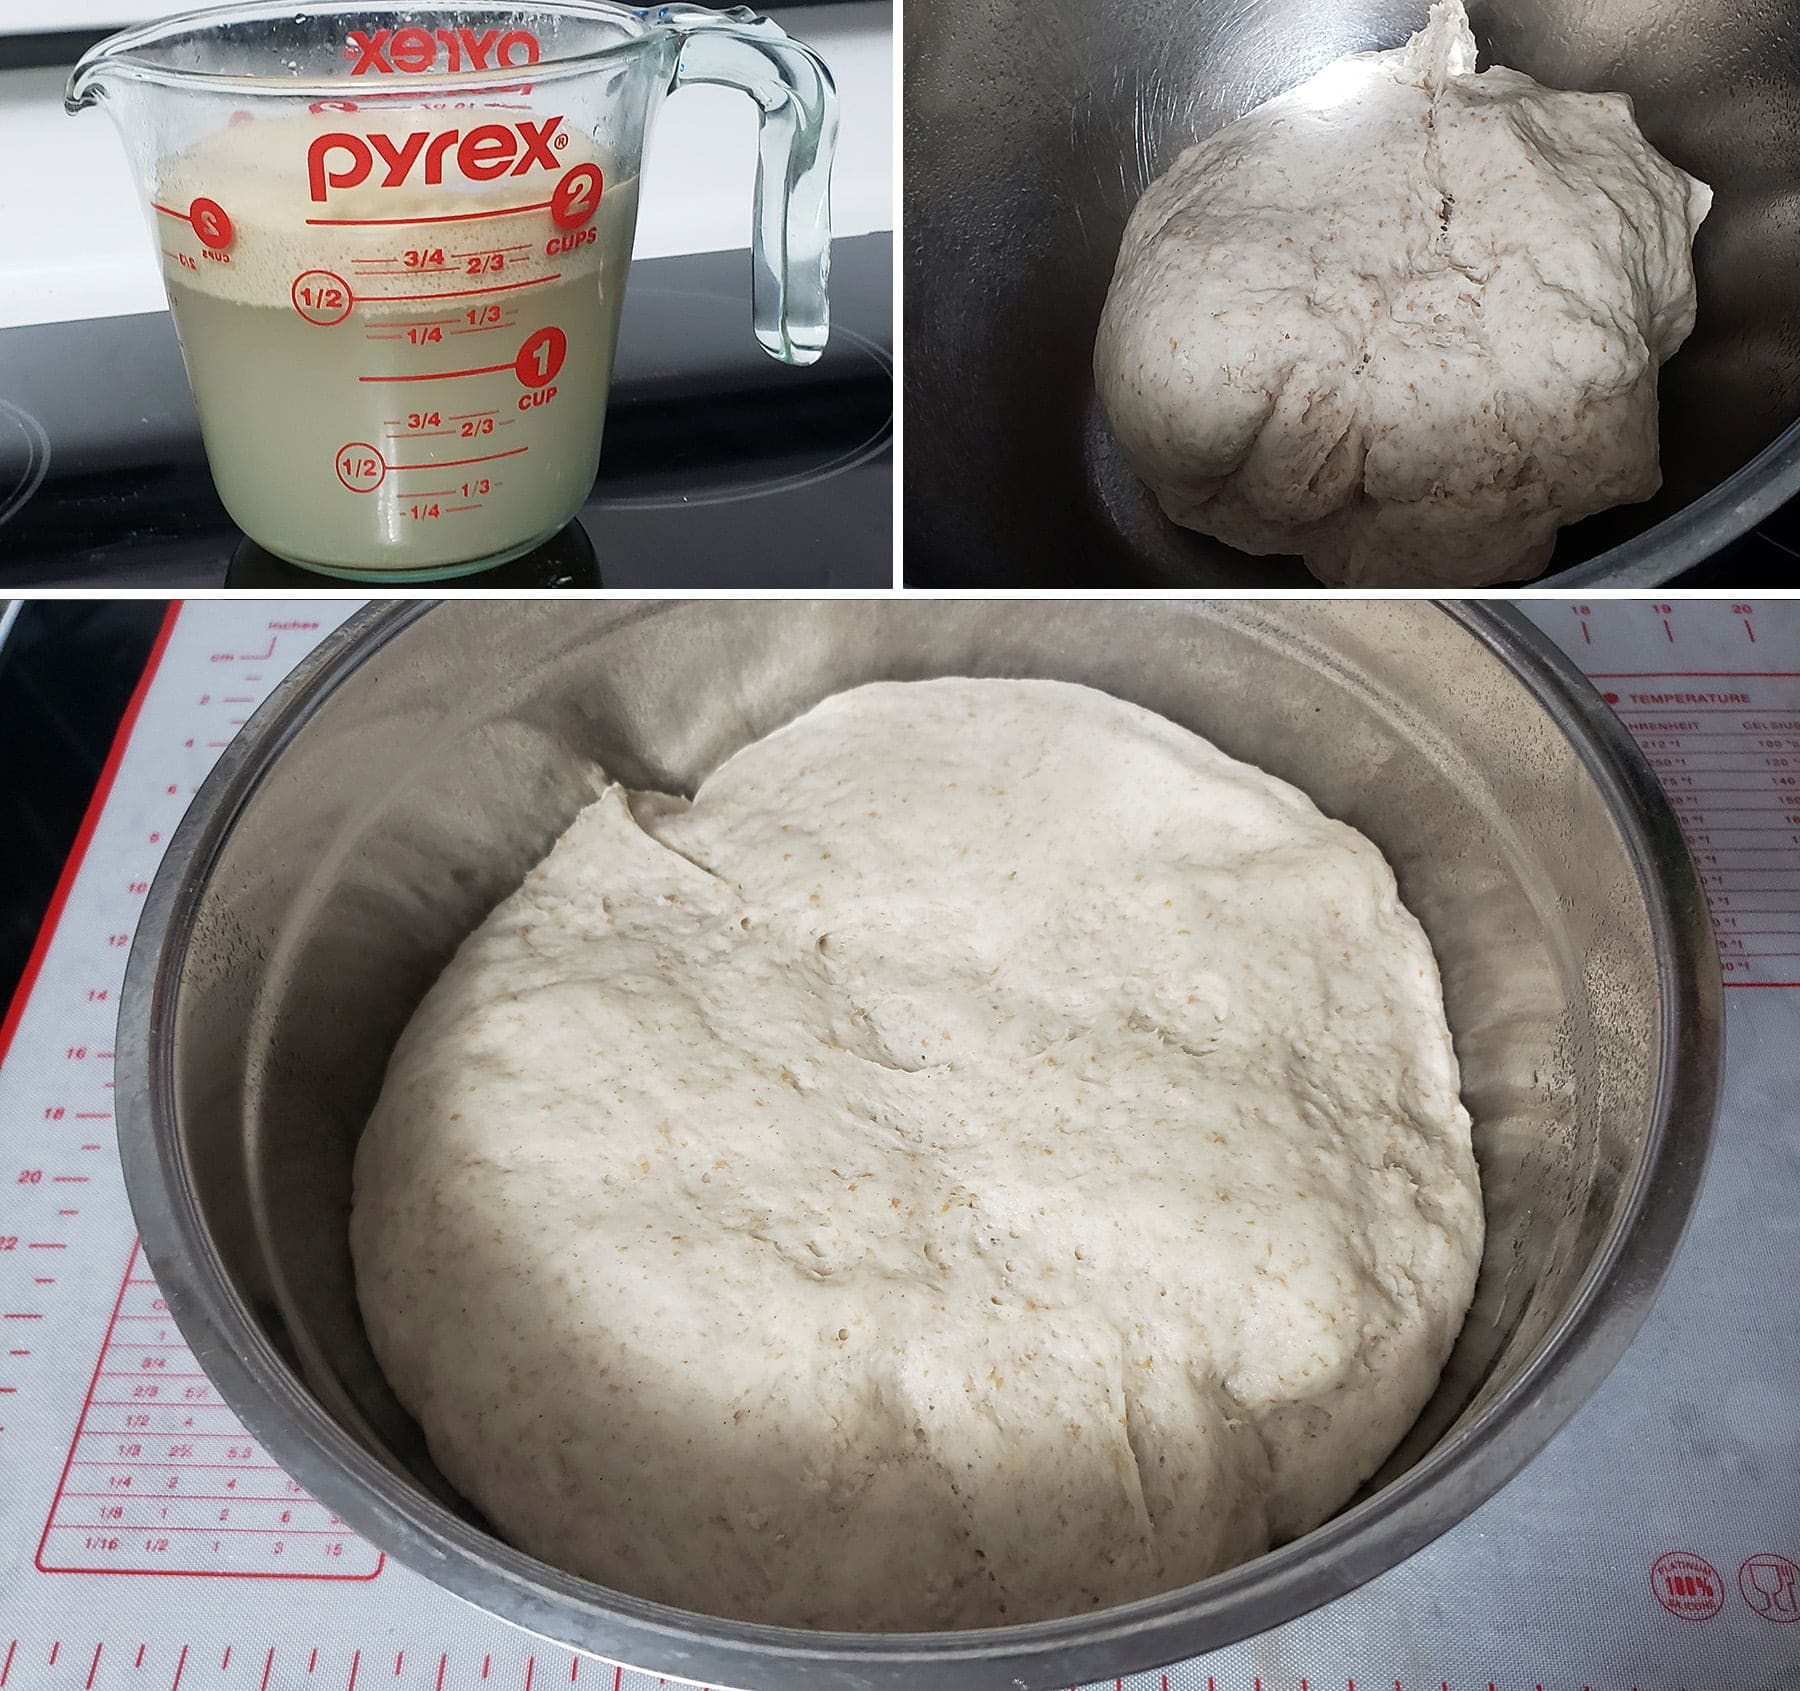 A 3 photo collage showing the progression of the dough. The first image shows yeast growing in a glass measuring cup of water, the second shows the newly kneaded dough. The final photo shows the dough after it has doubled in size from rising.